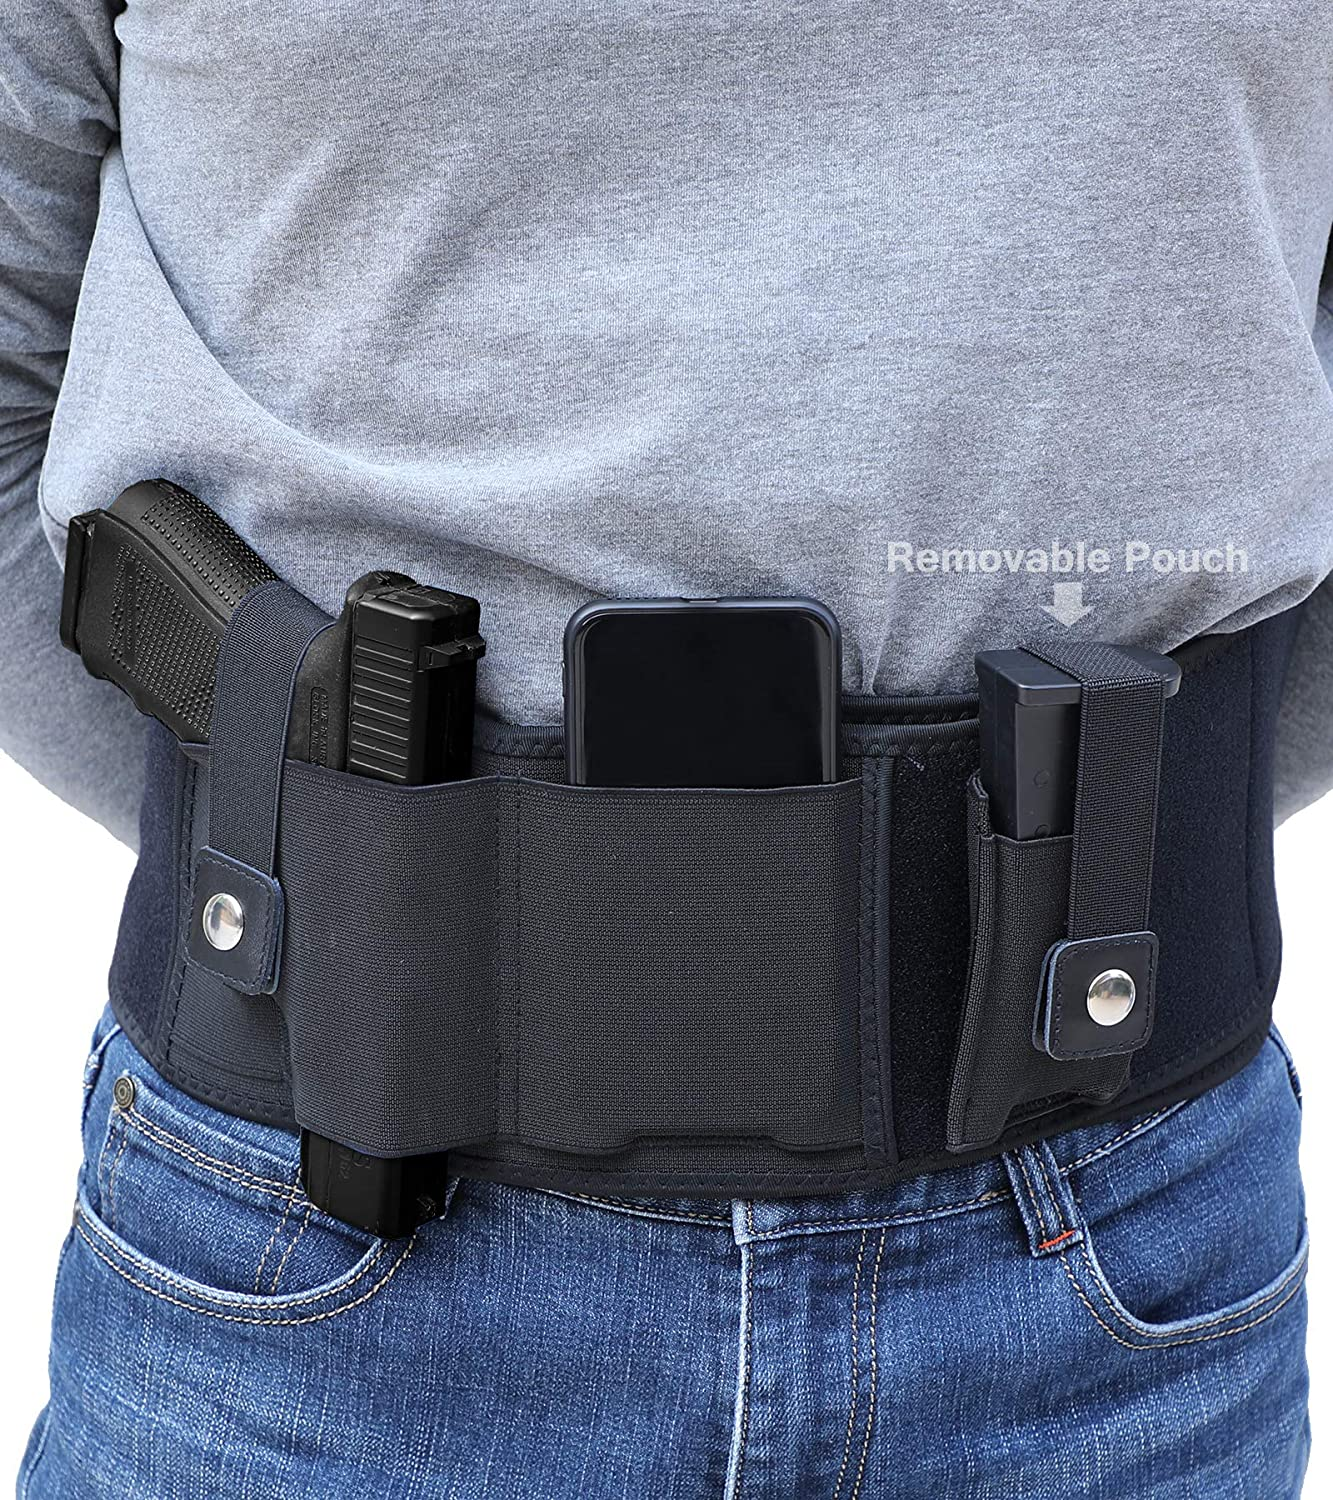 Belly Band Holster Max 89% OFF for f Free shipping anywhere in the nation Concealed Carry IWB